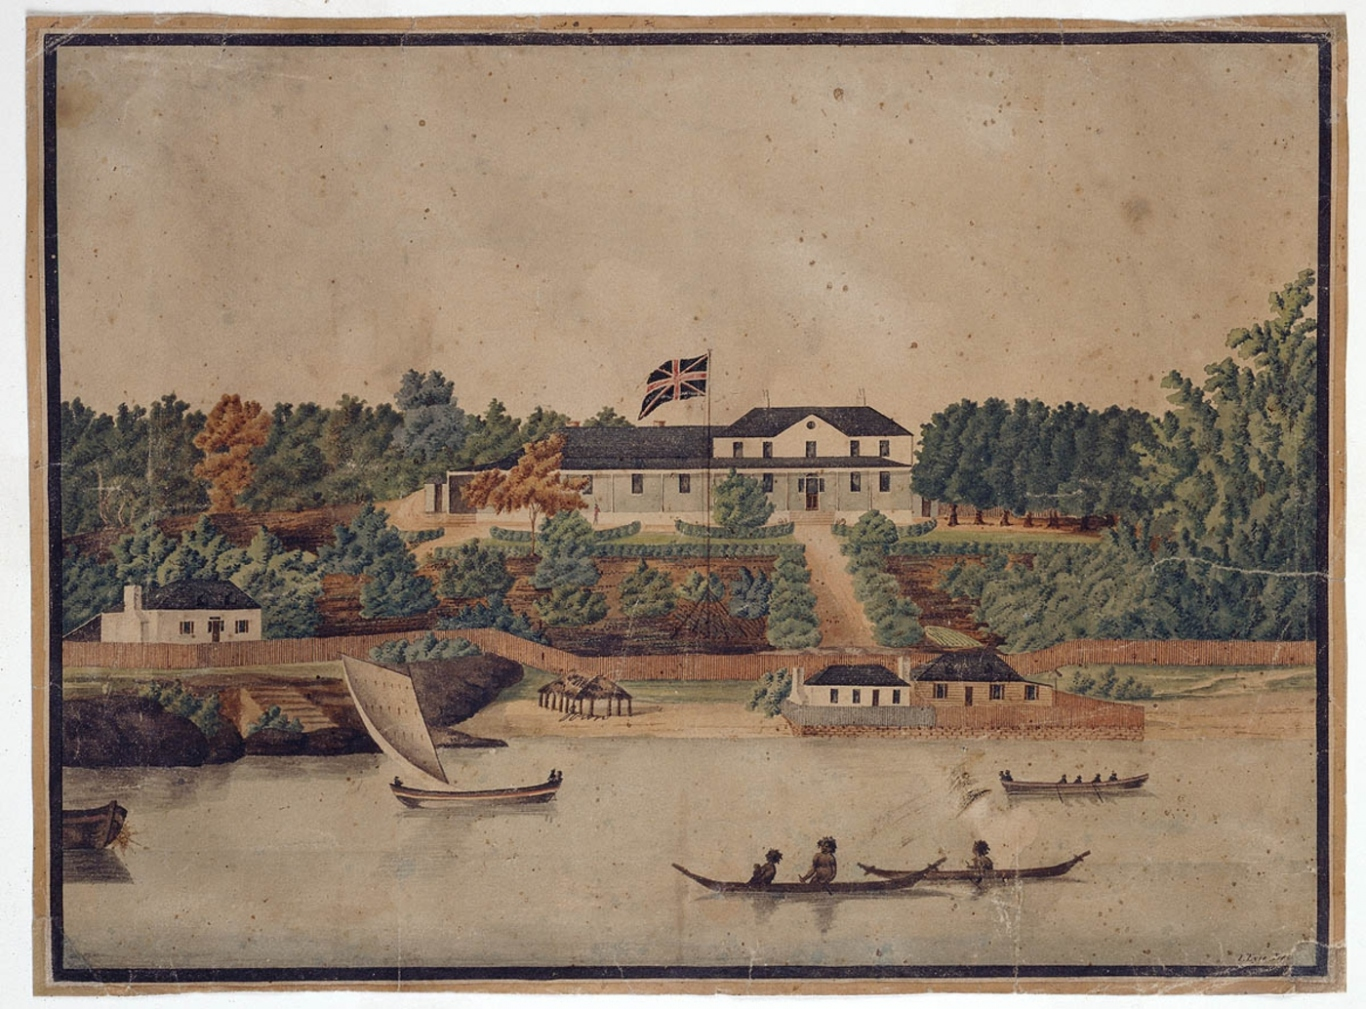 Old watercolour showing the harbour, foreshore area and gardens in front of first Government House. Yachts and aborigines in canoes are depicted on the water.